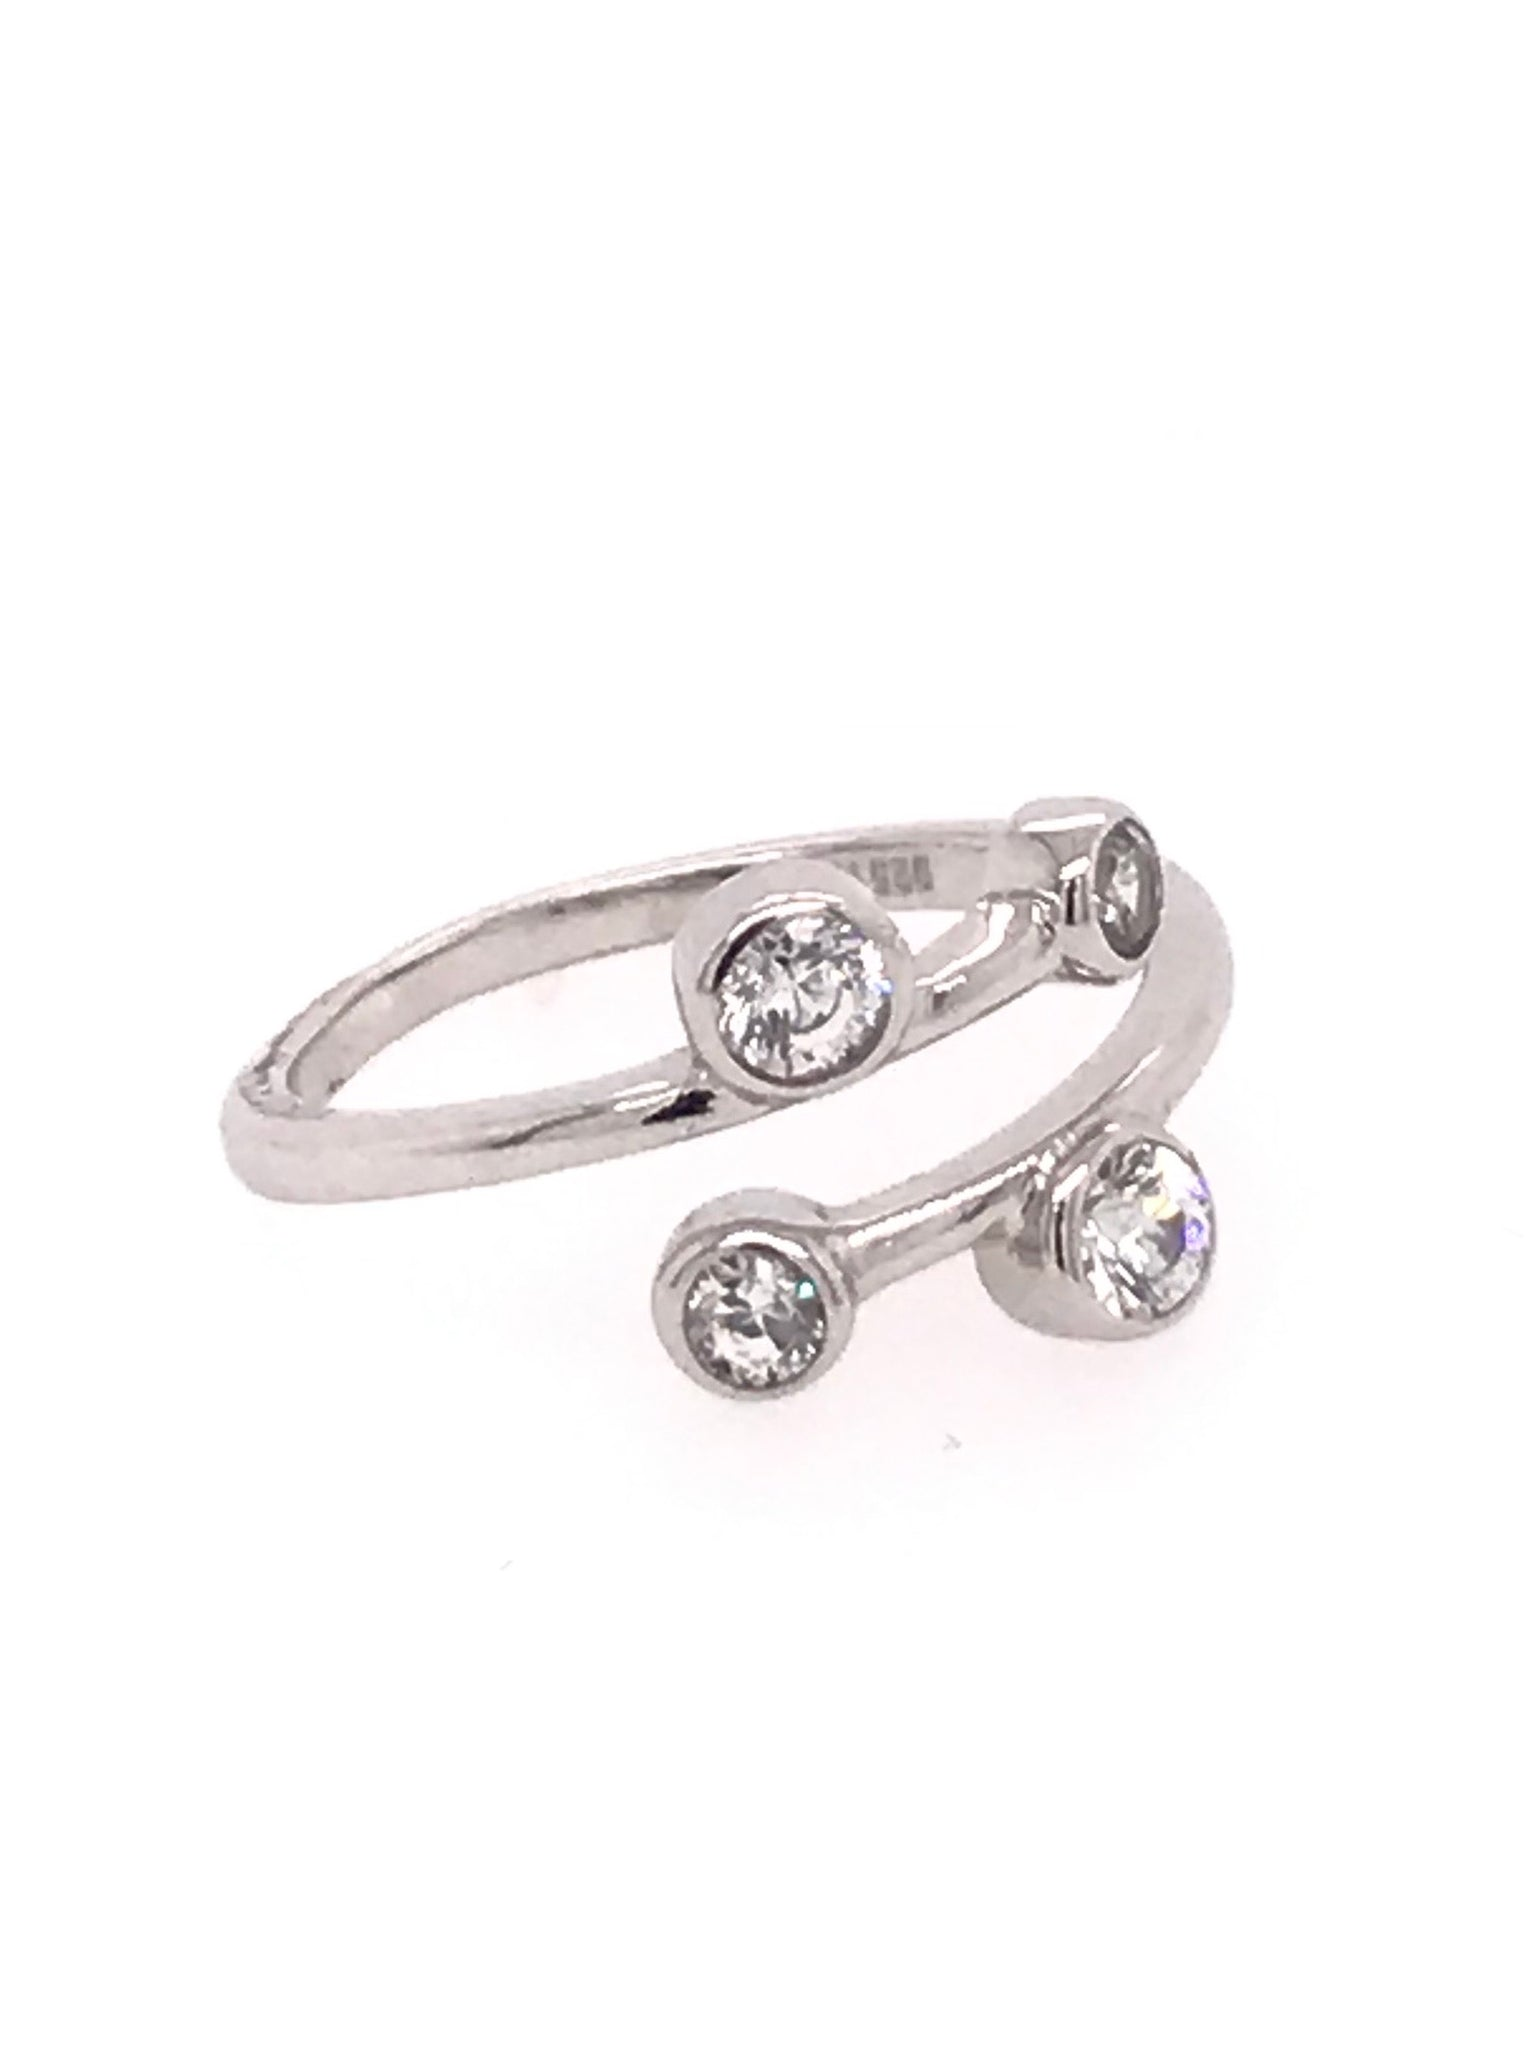 Four Stone Adjustable Toe Ring